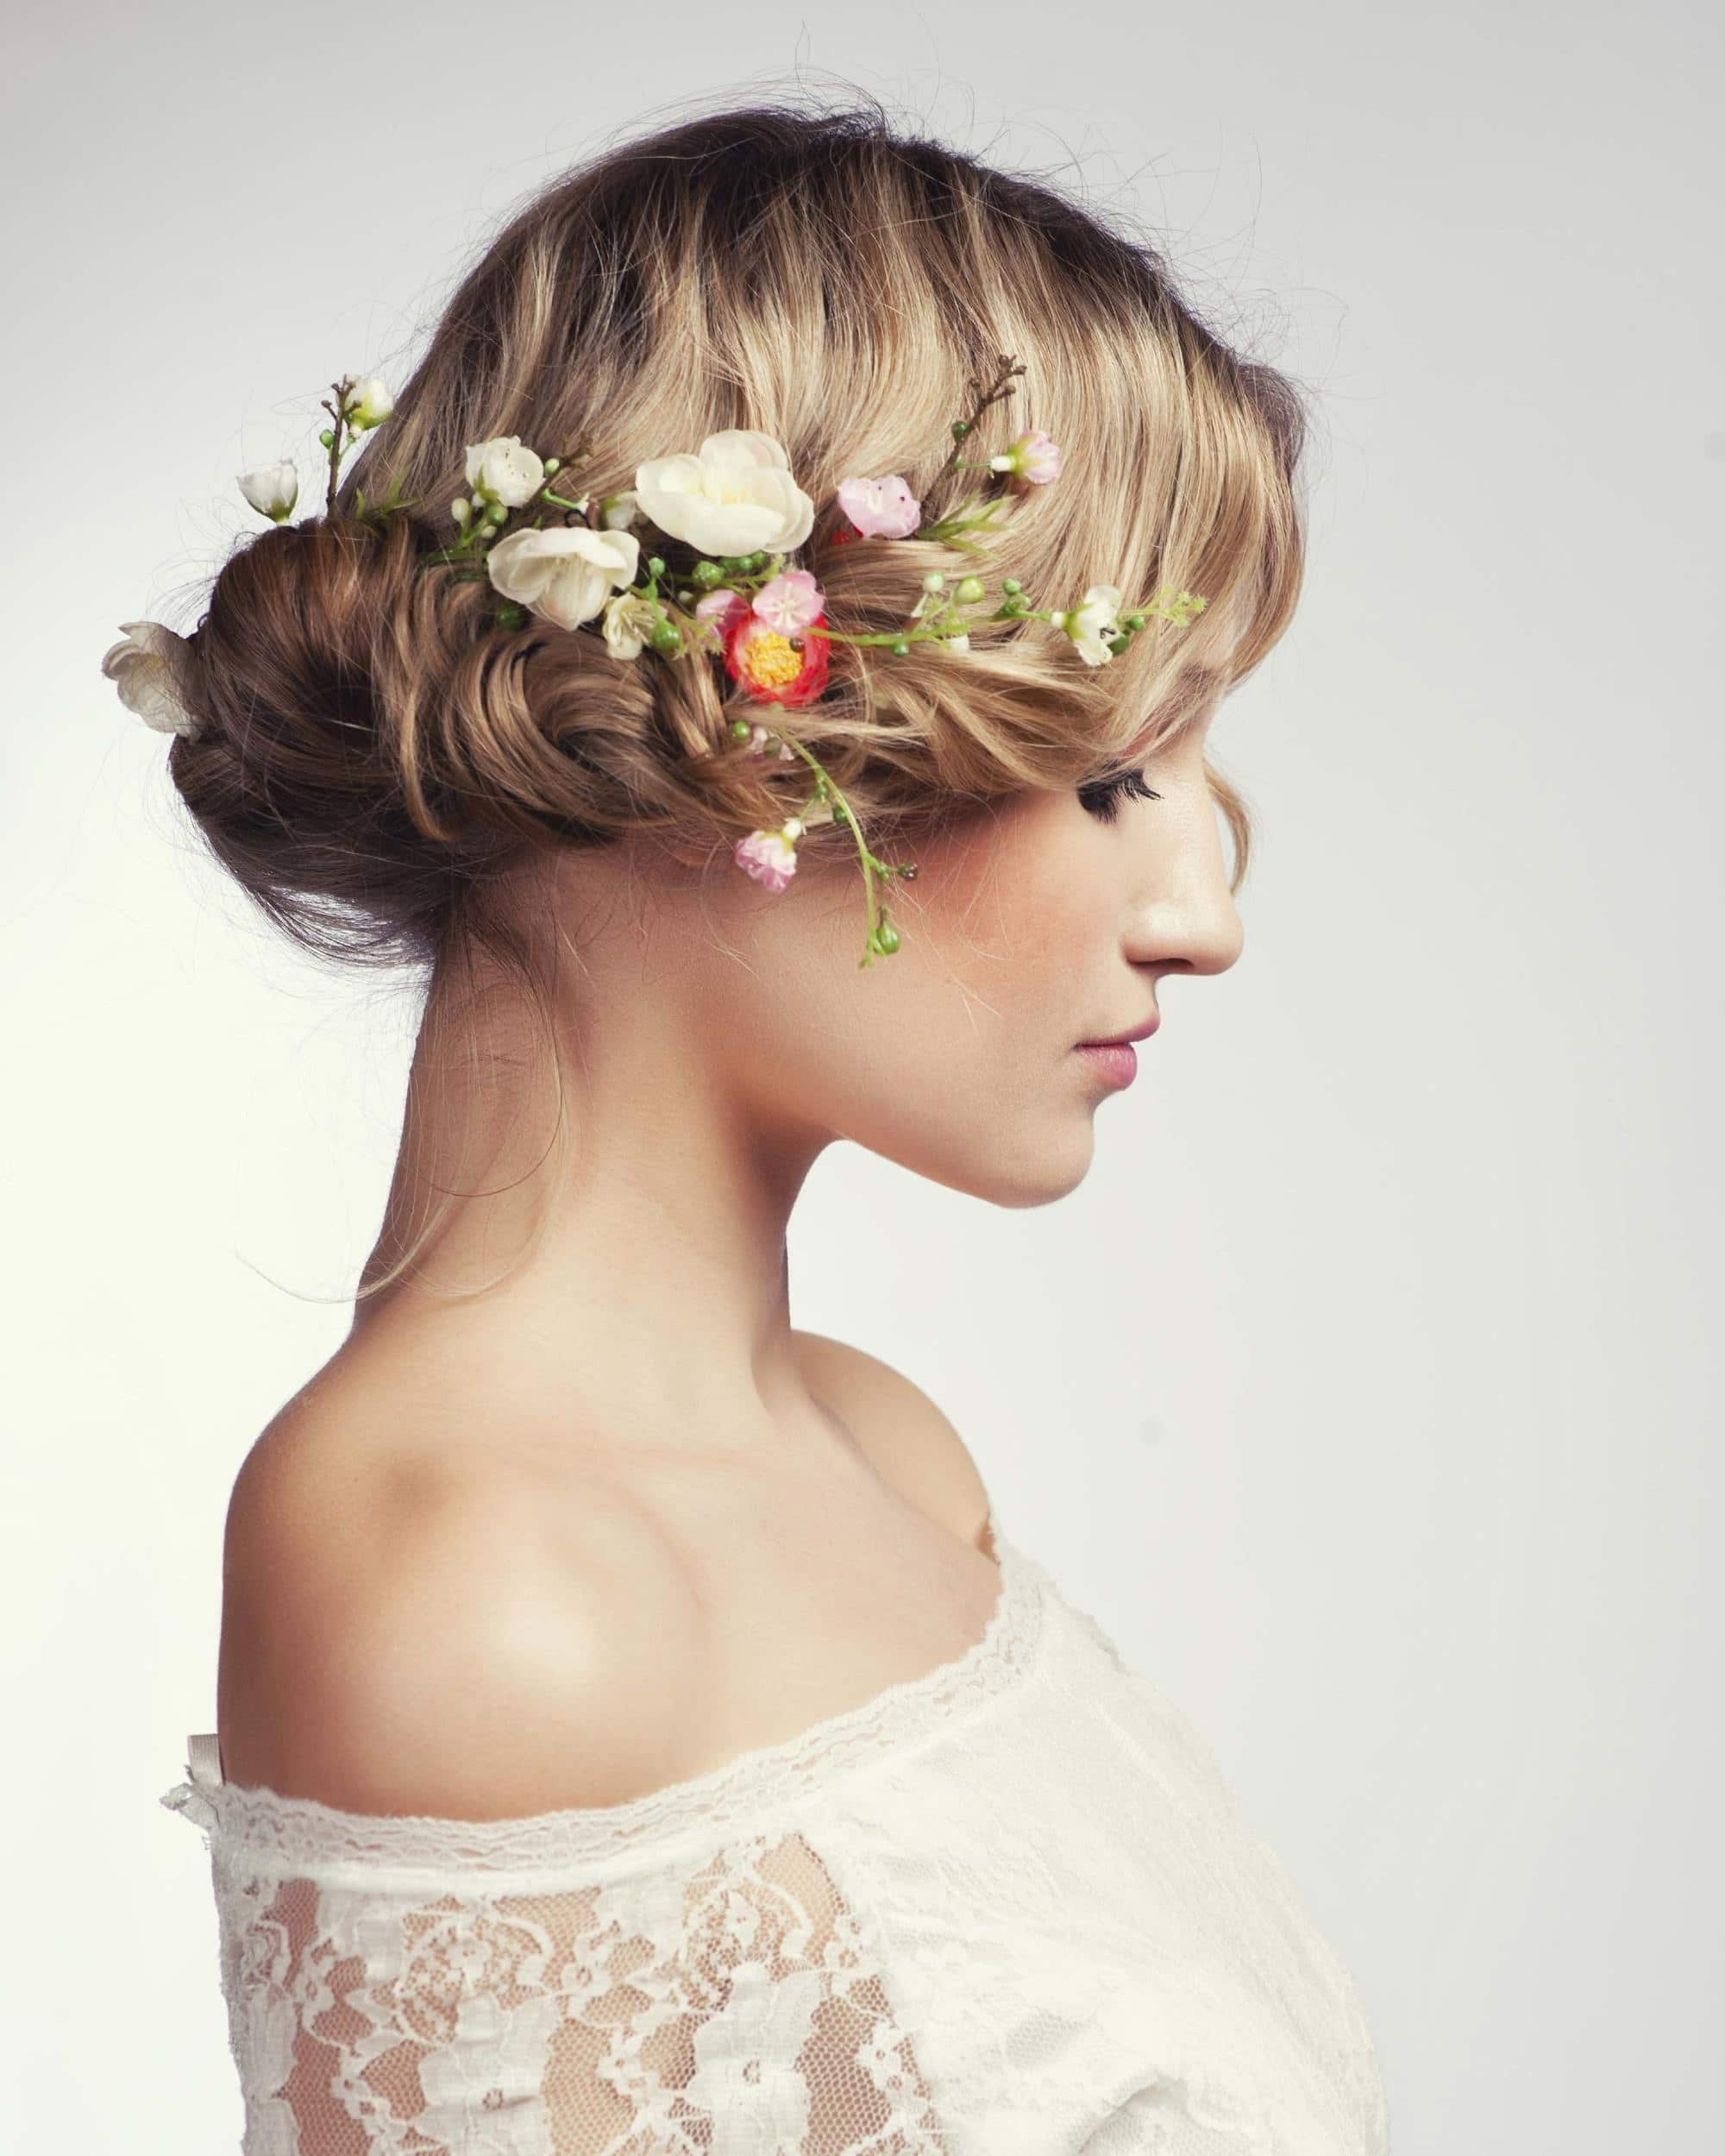 20 Best of Undone Low Bun Bridal Hairstyles With Floral Headband